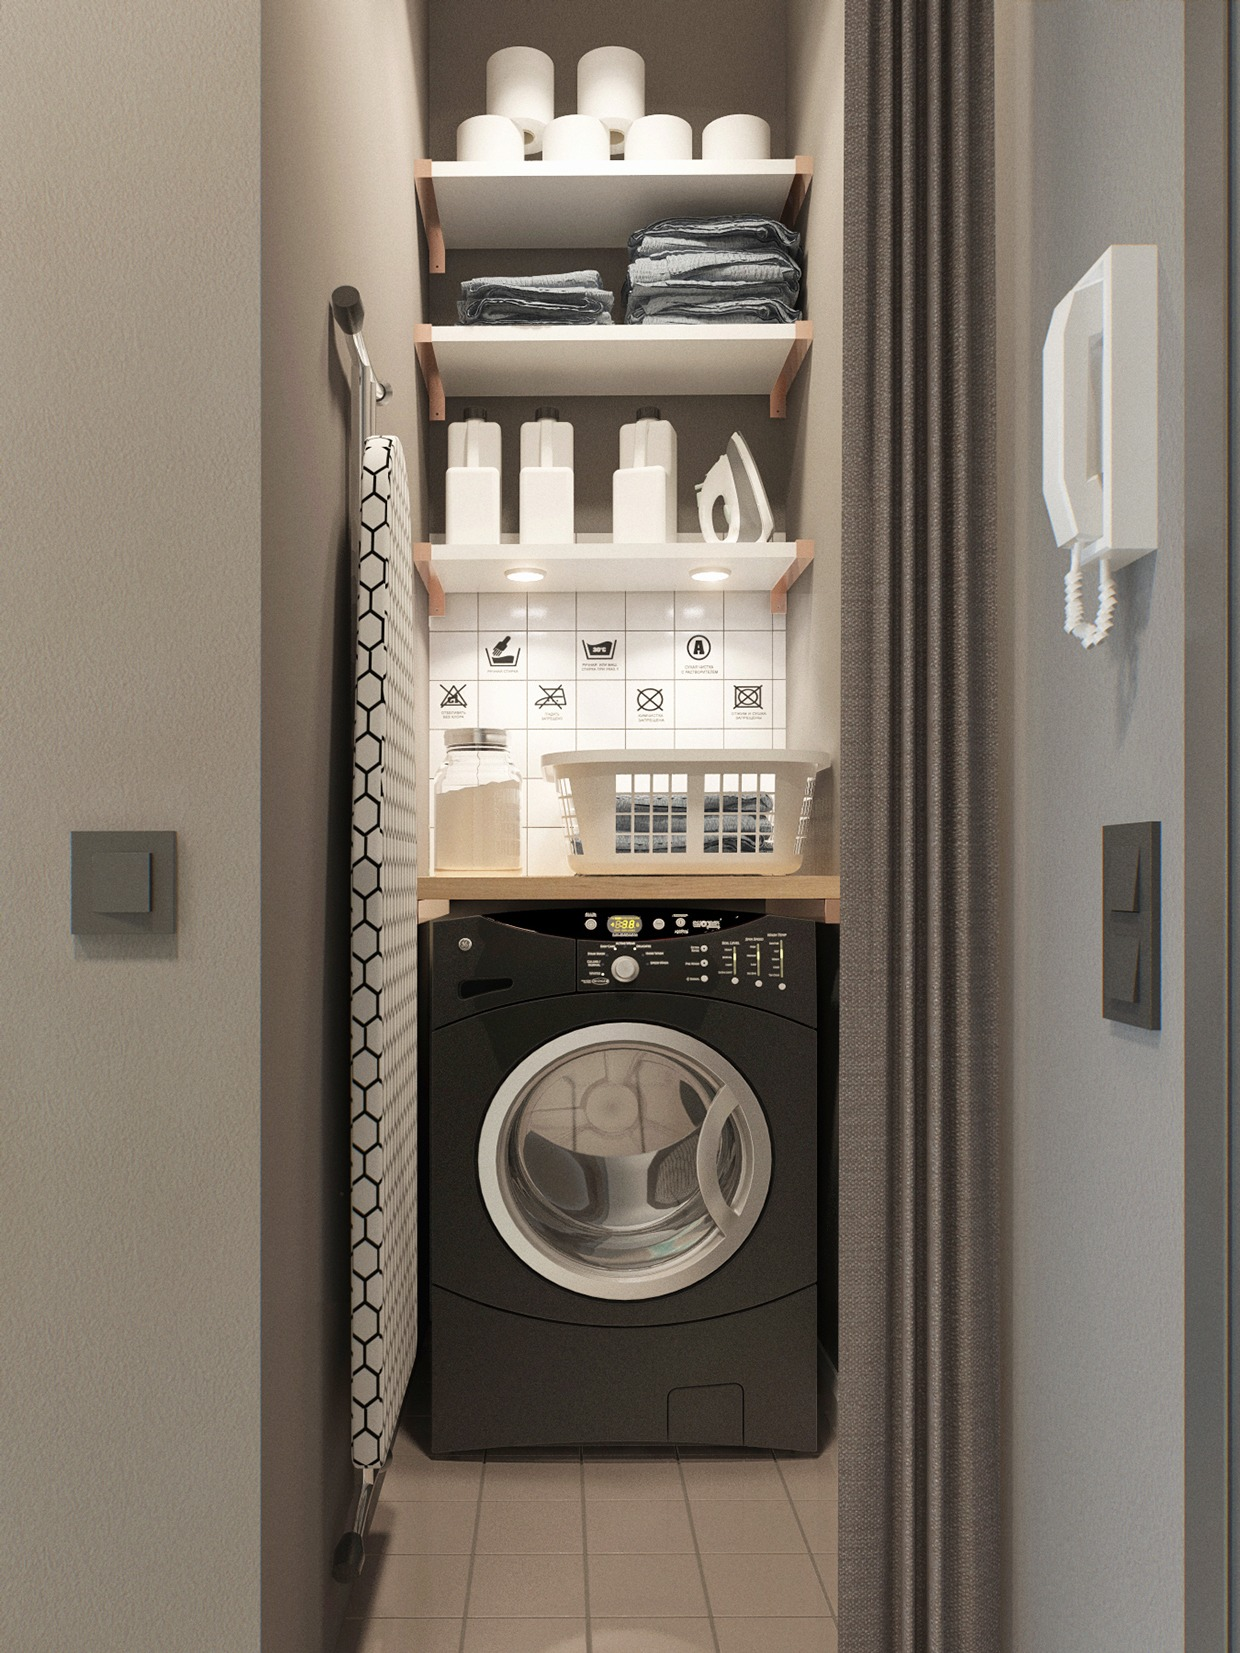 Small Laundry Room - 2 simple super beautiful studio apartment concepts for a young couple includes floor plans